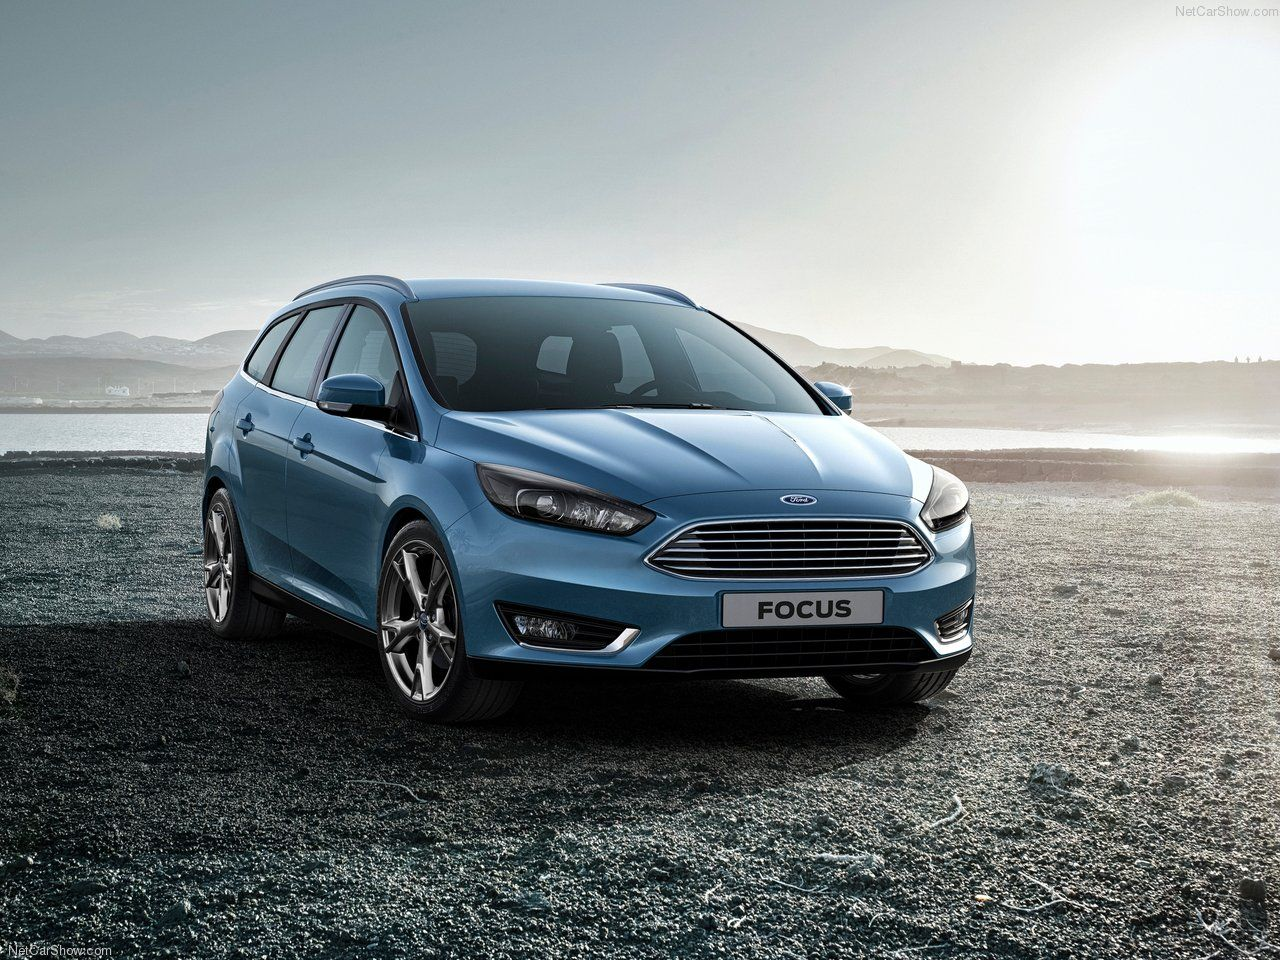 2015 Ford Focus Wagon Car Pictures Automoviles Autos